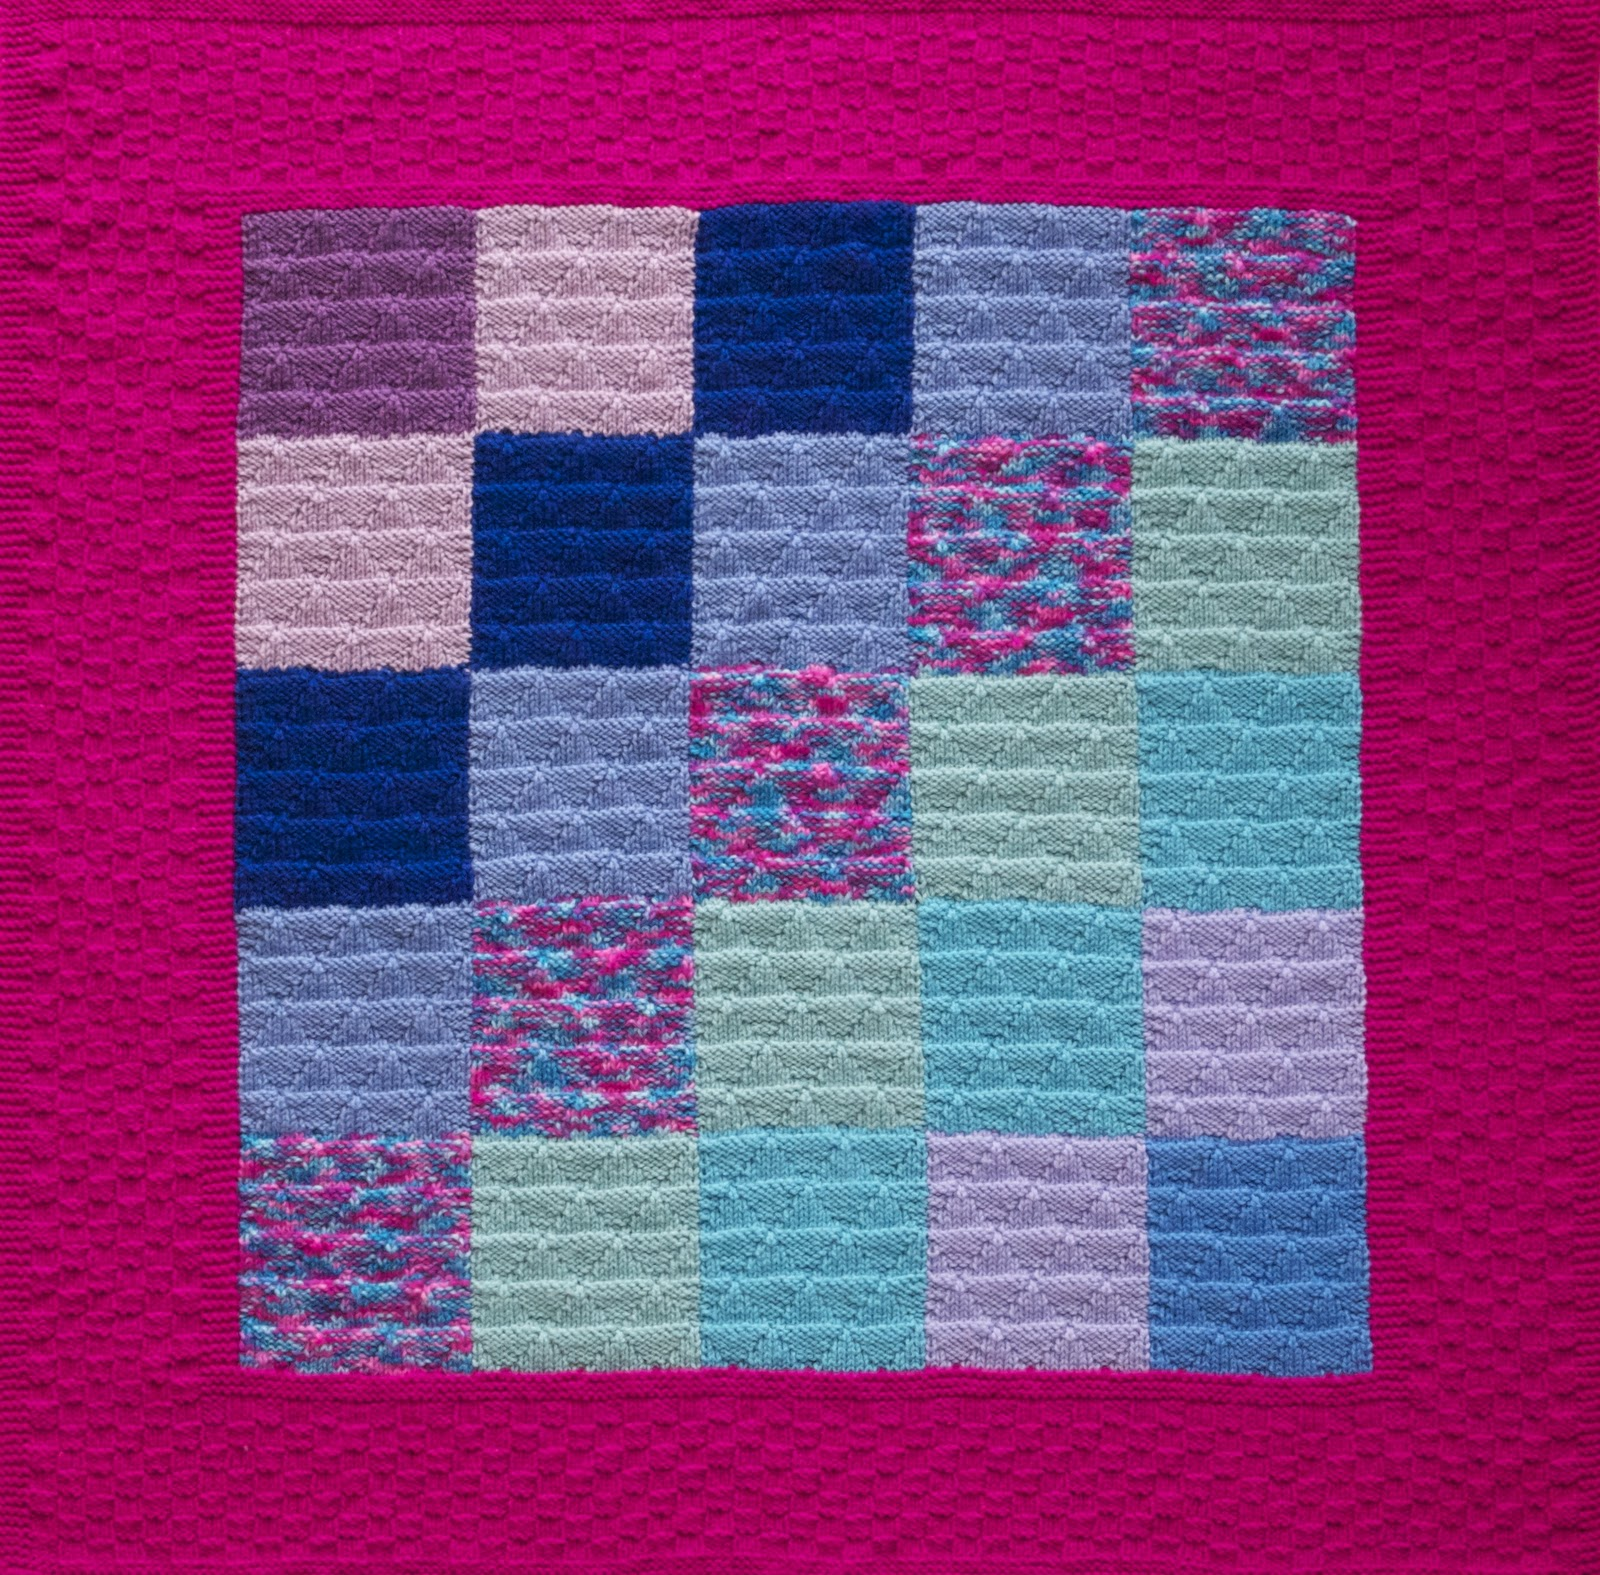 Knitting Pattern Quilt : QuiltWrapUp: Hot Pink Knitted Quilt